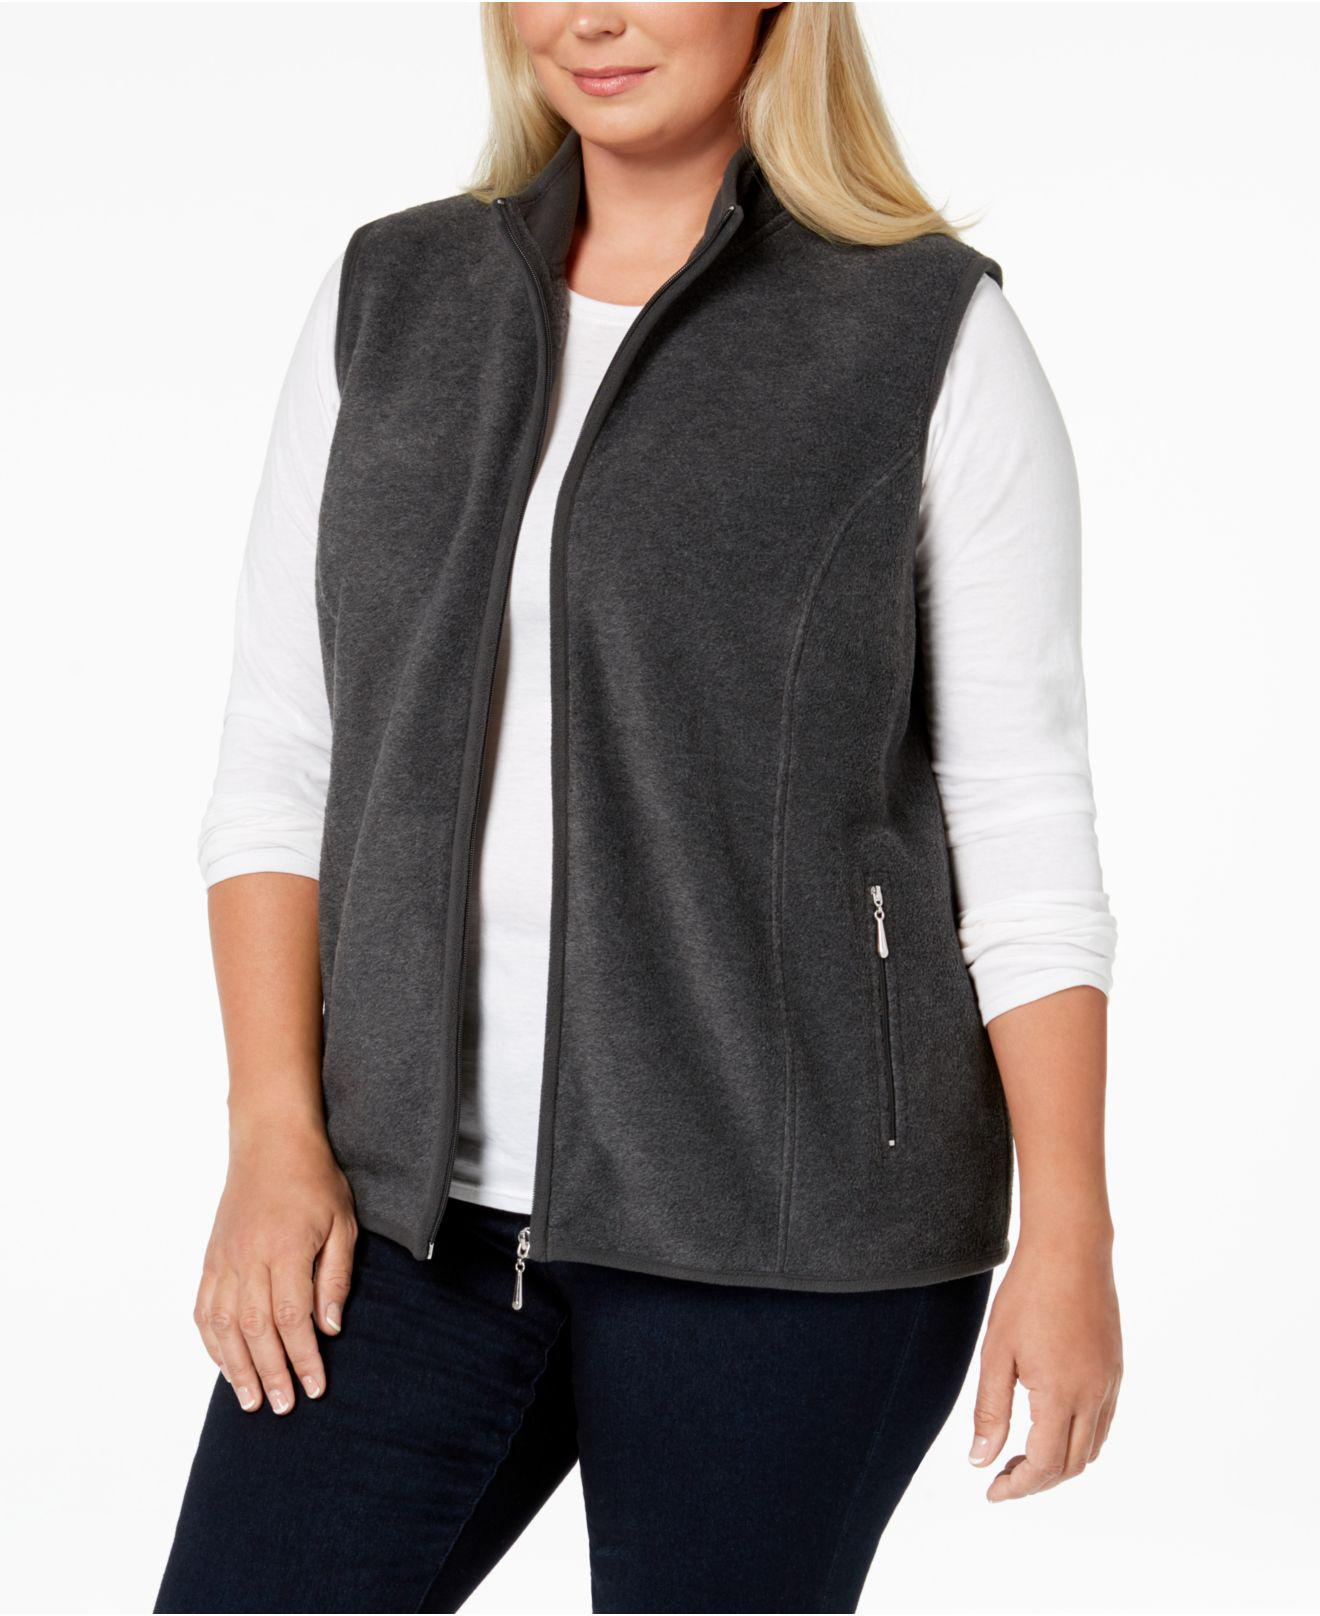 4bb2d0269d3b9 Lyst - Karen Scott Plus Size Zeroproof Fleece Vest in Gray